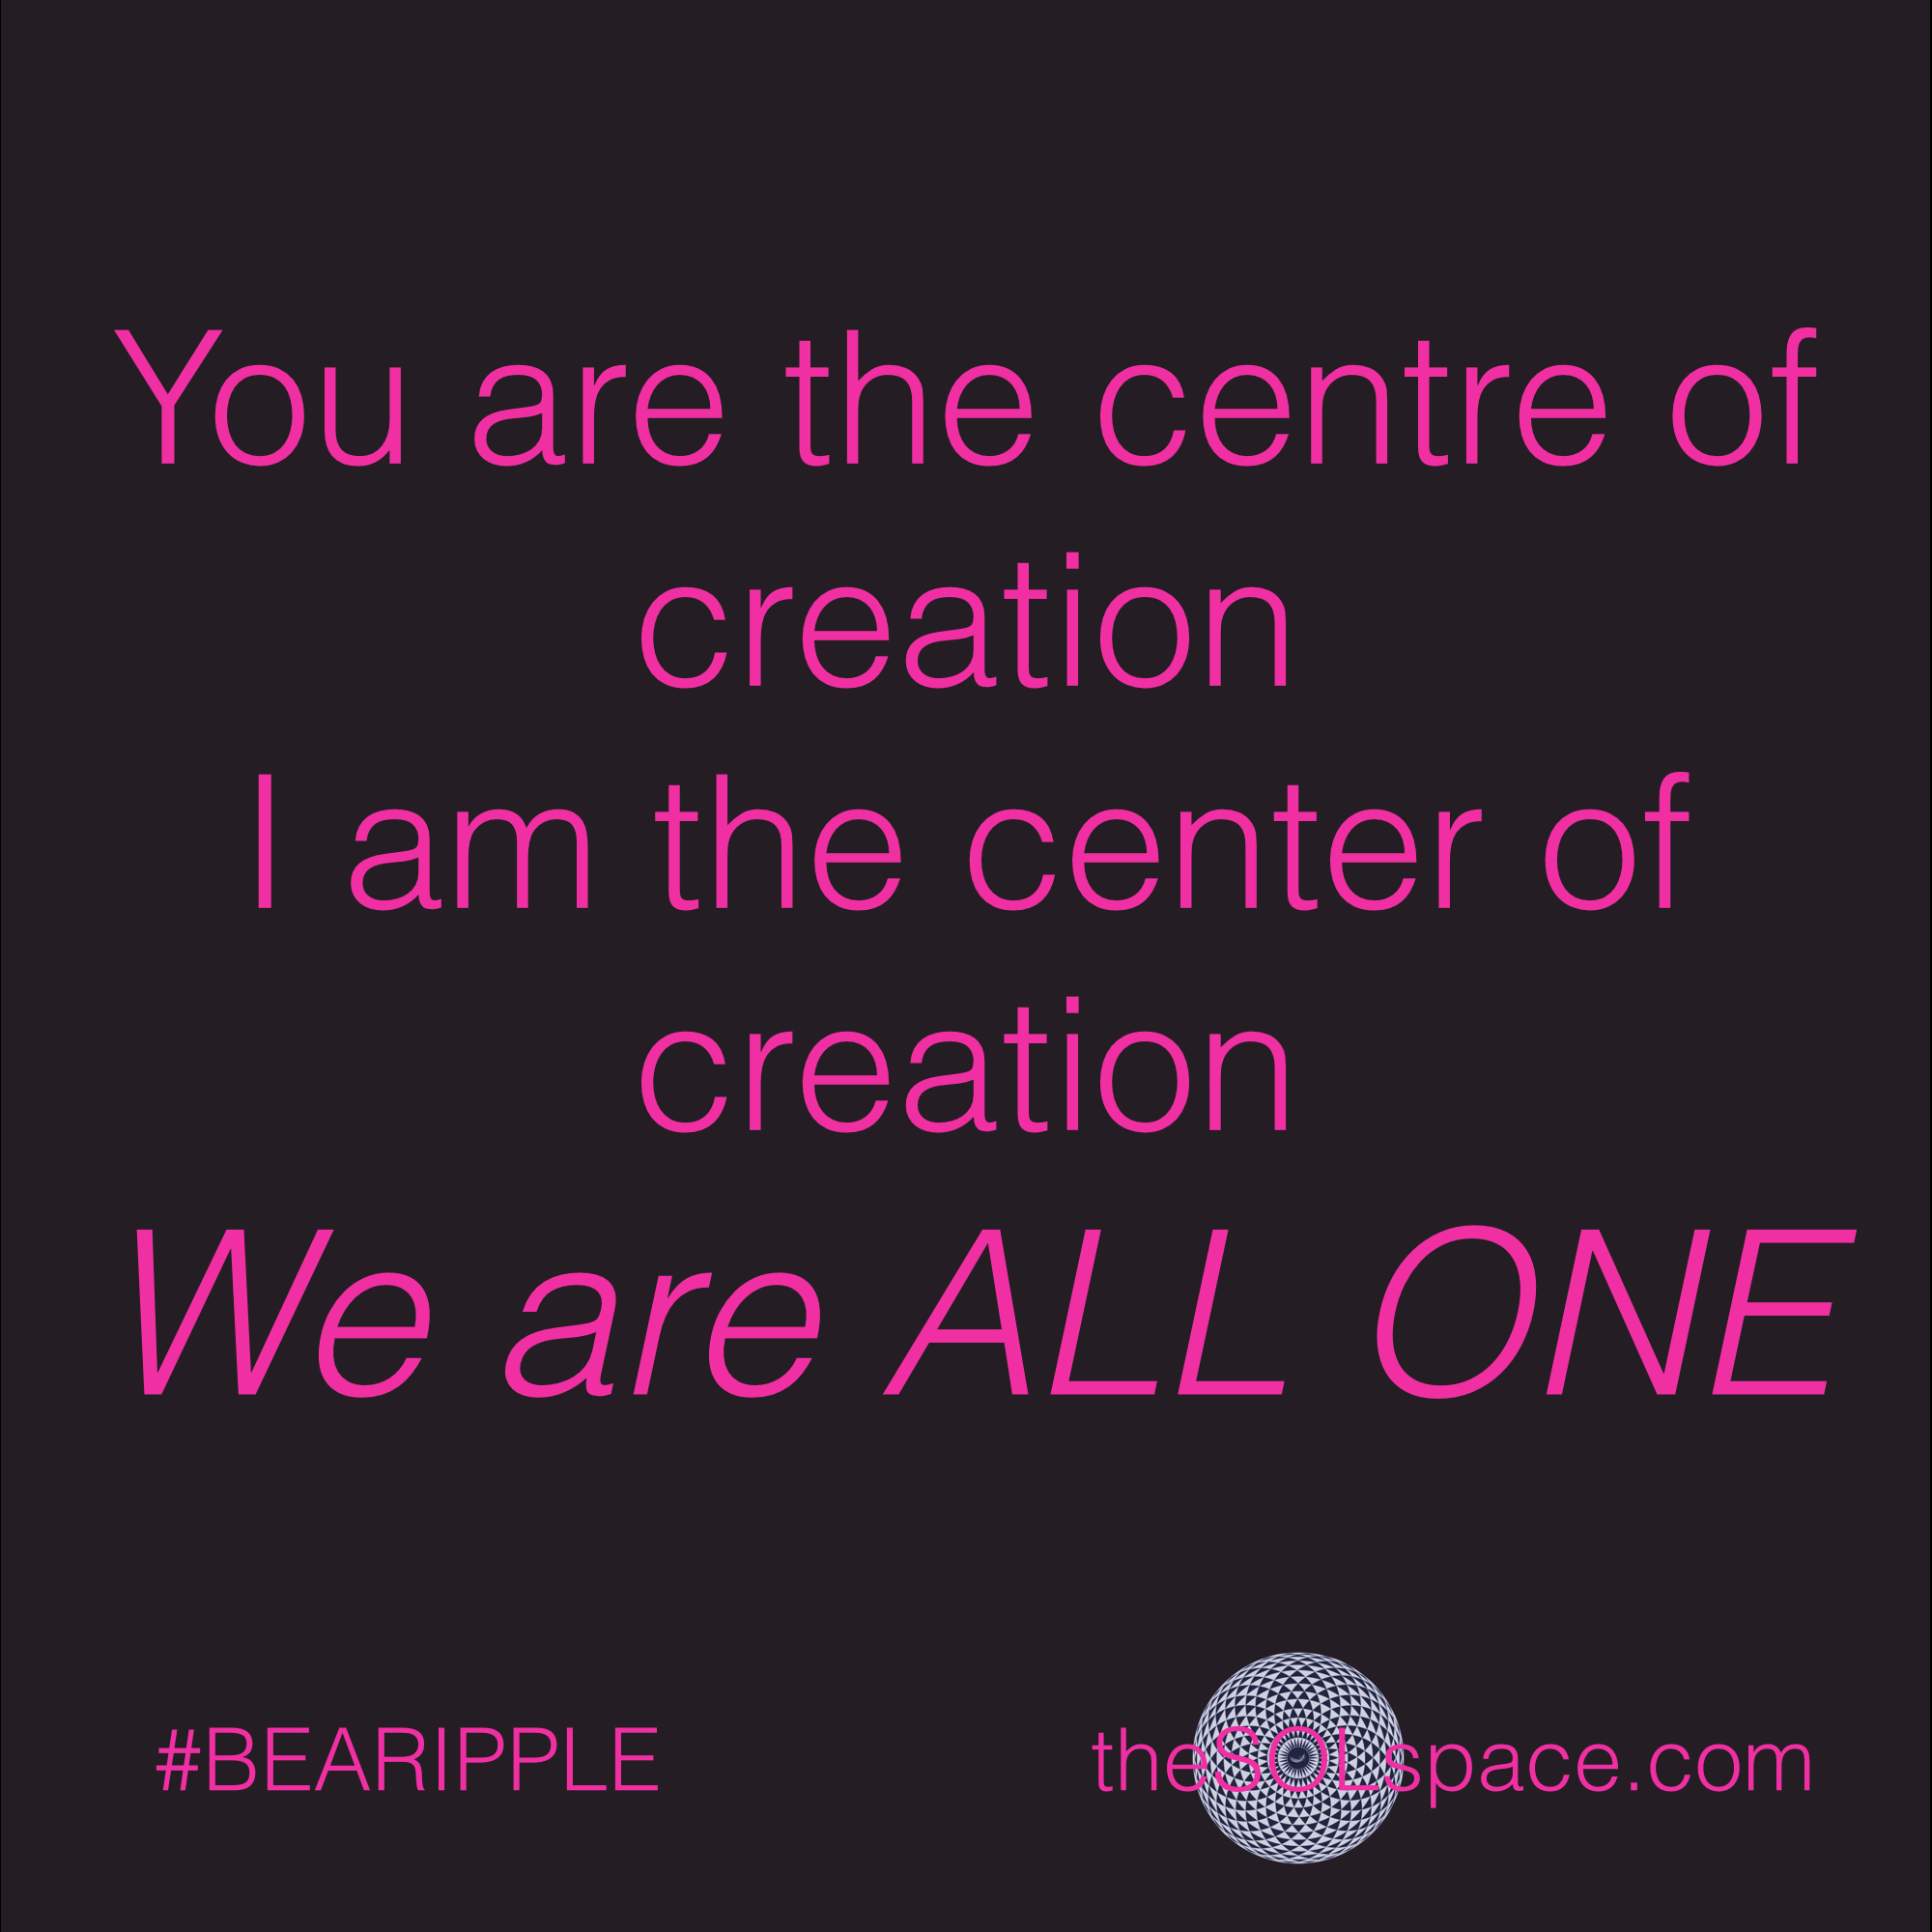 #BeARipple..you are the centre of creation, I am the center of creation. We are all one @theSOLspace